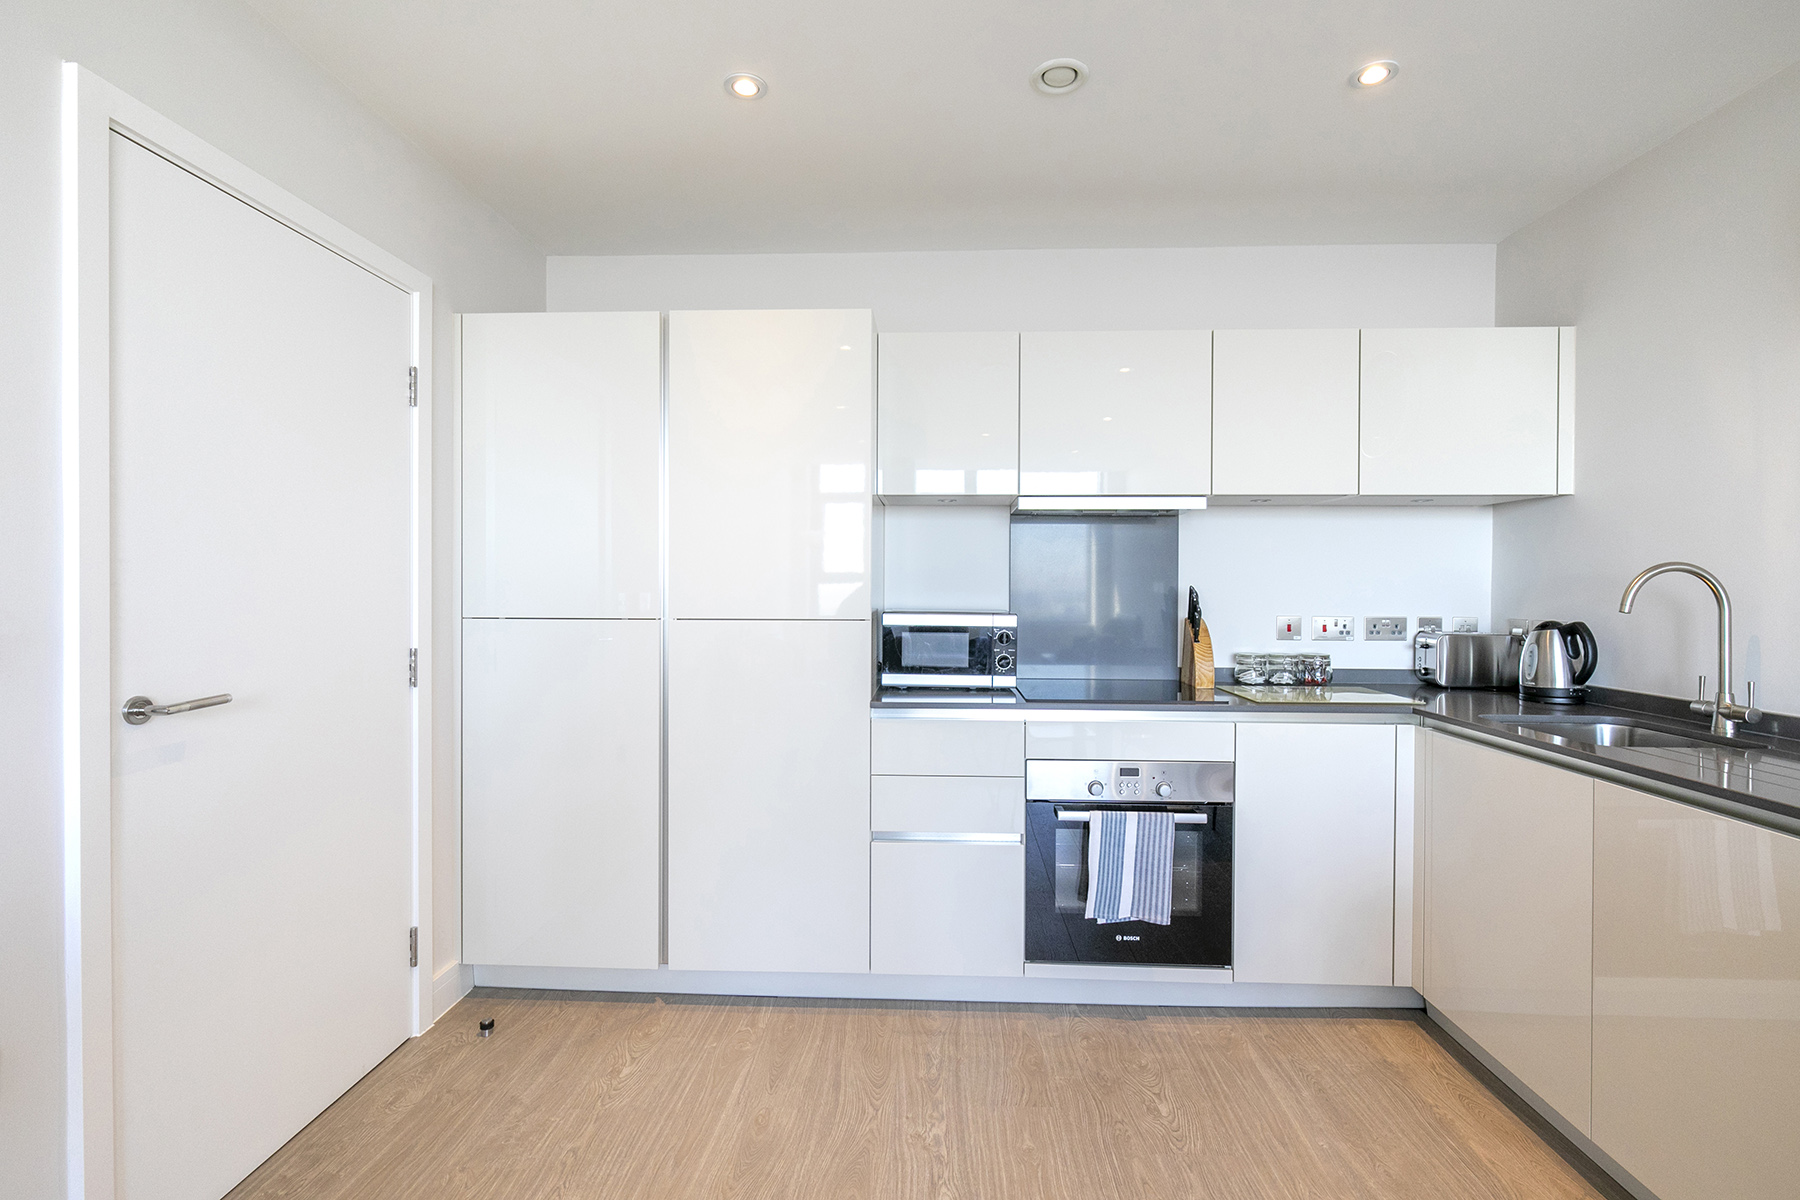 Kitchen at The View Apartments, Centre, Sunbury - Citybase Apartments